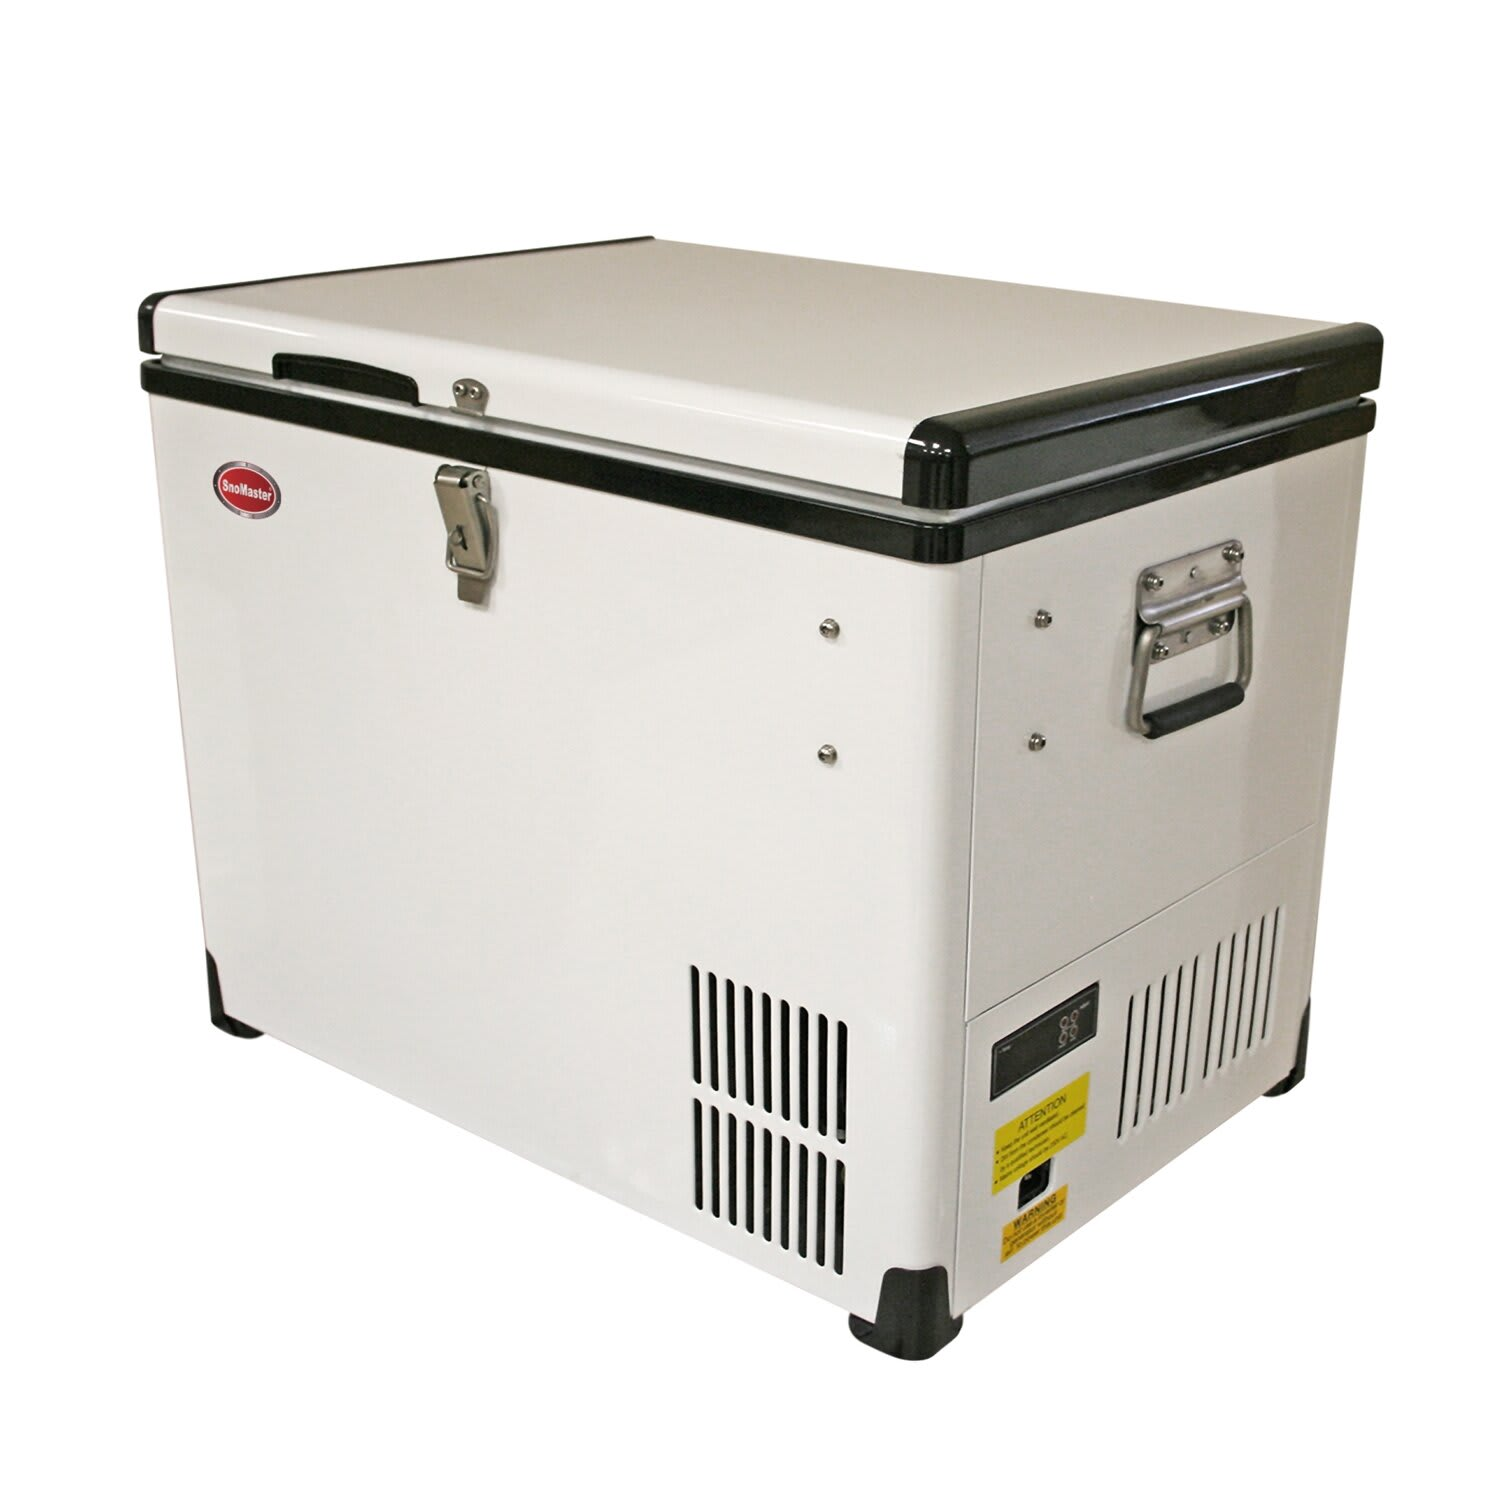 Snomaster 60 Litre 220V Fridge/Freezer